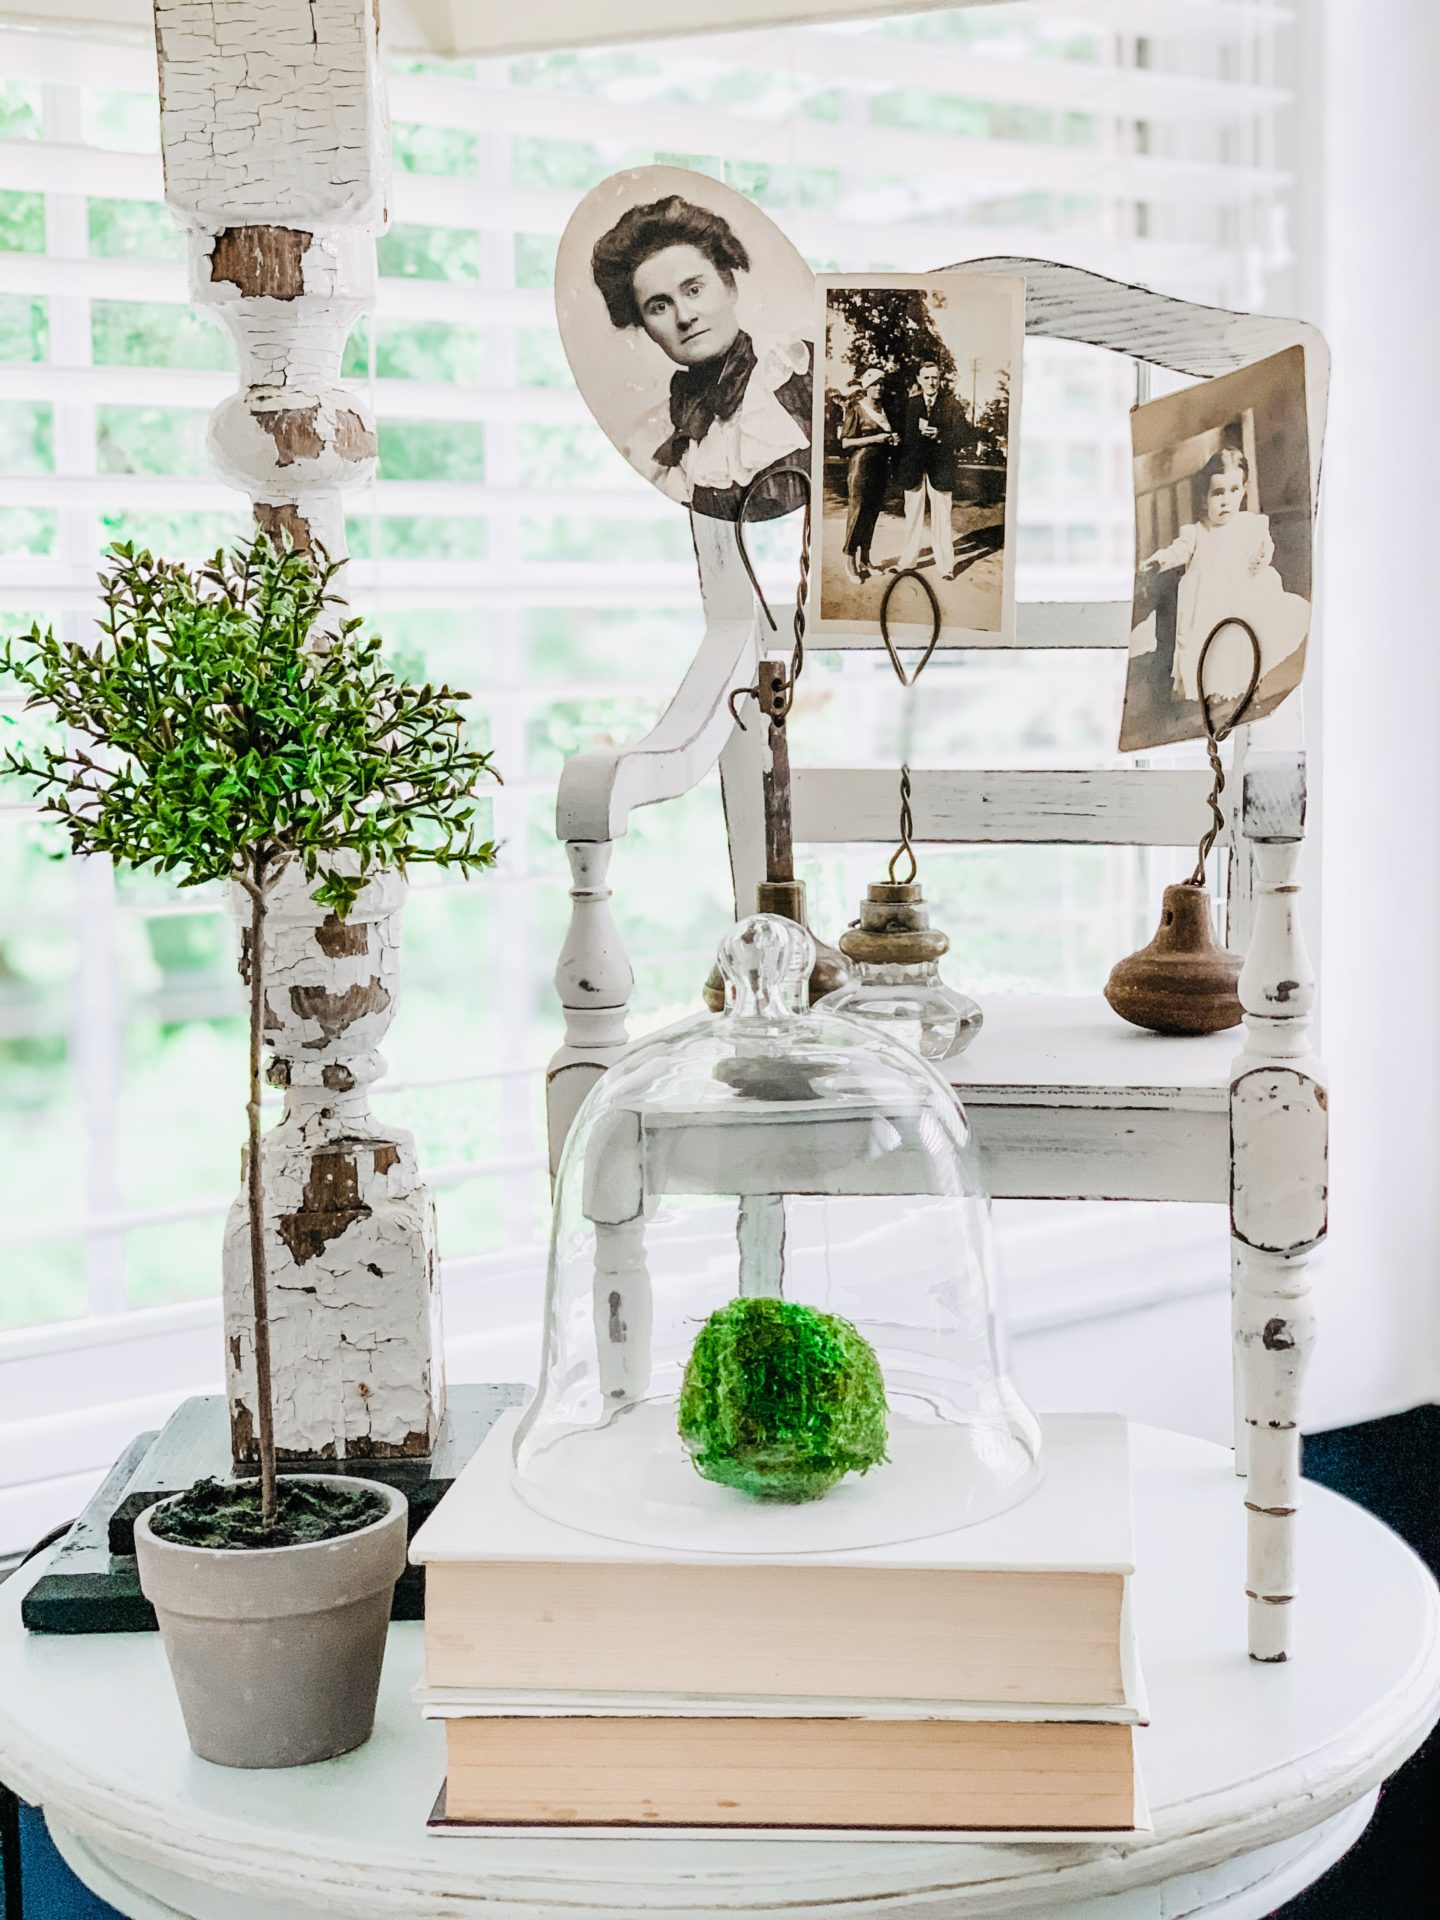 10 Ways to Repurpose Things From Thrift Stores